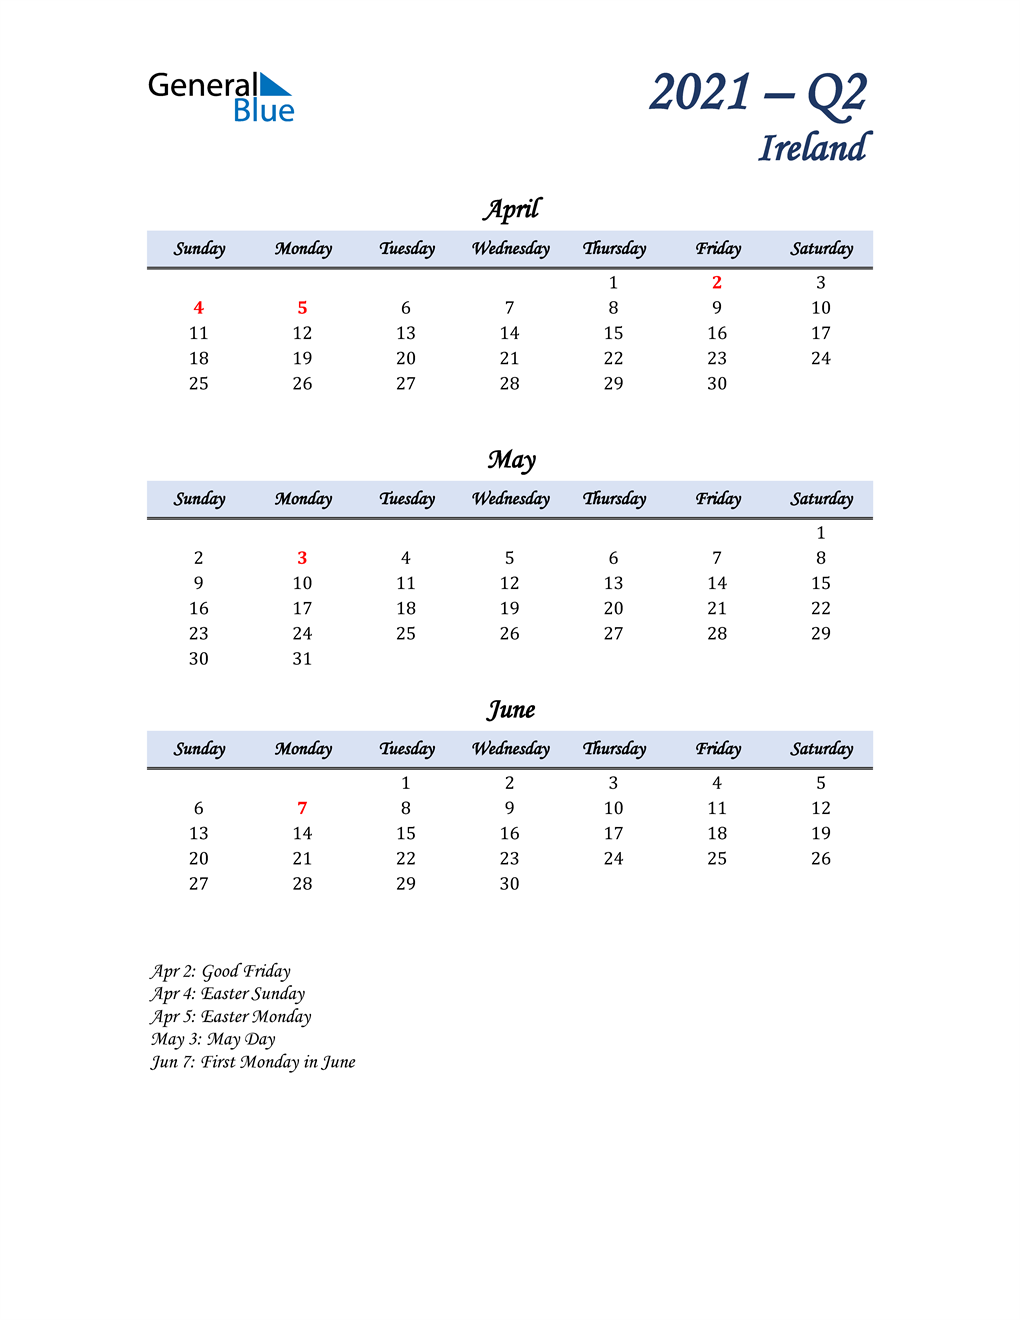 April, May, and June Calendar for Ireland